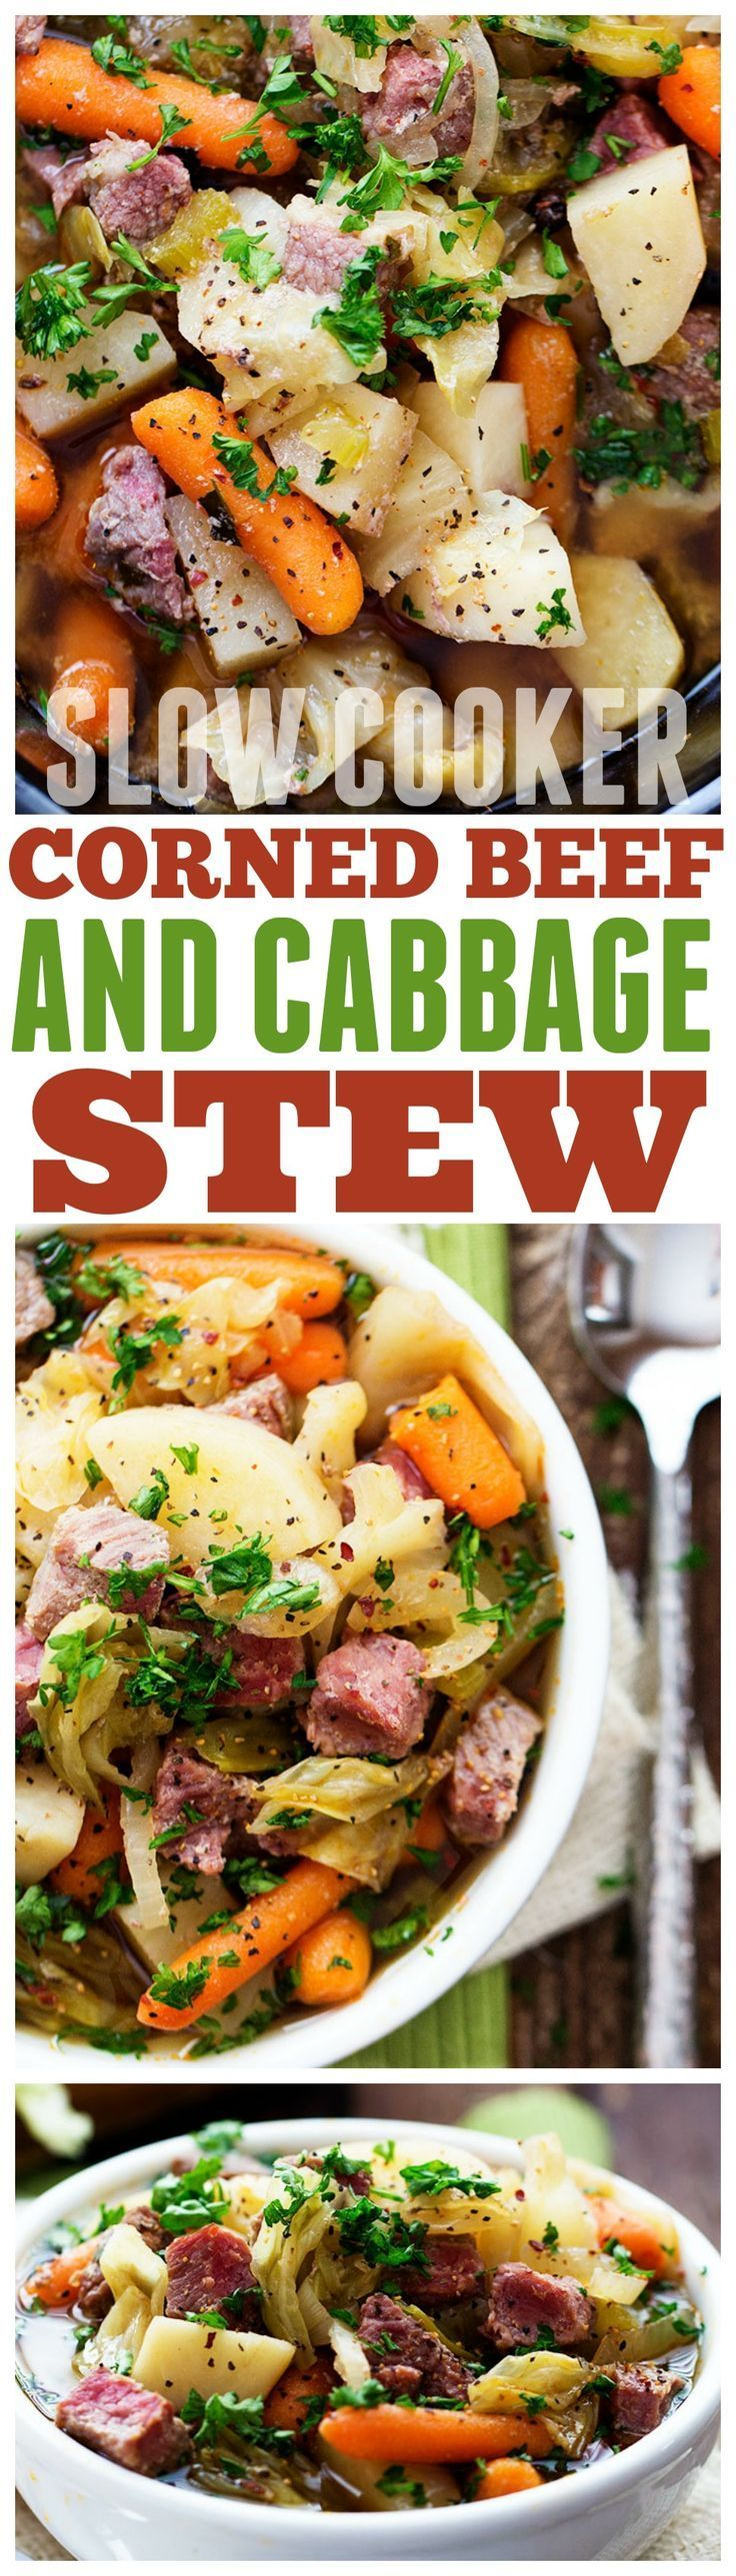 This Slow Cooker Corned Beef and Cabbage Stew is hearty and full of flavor!!